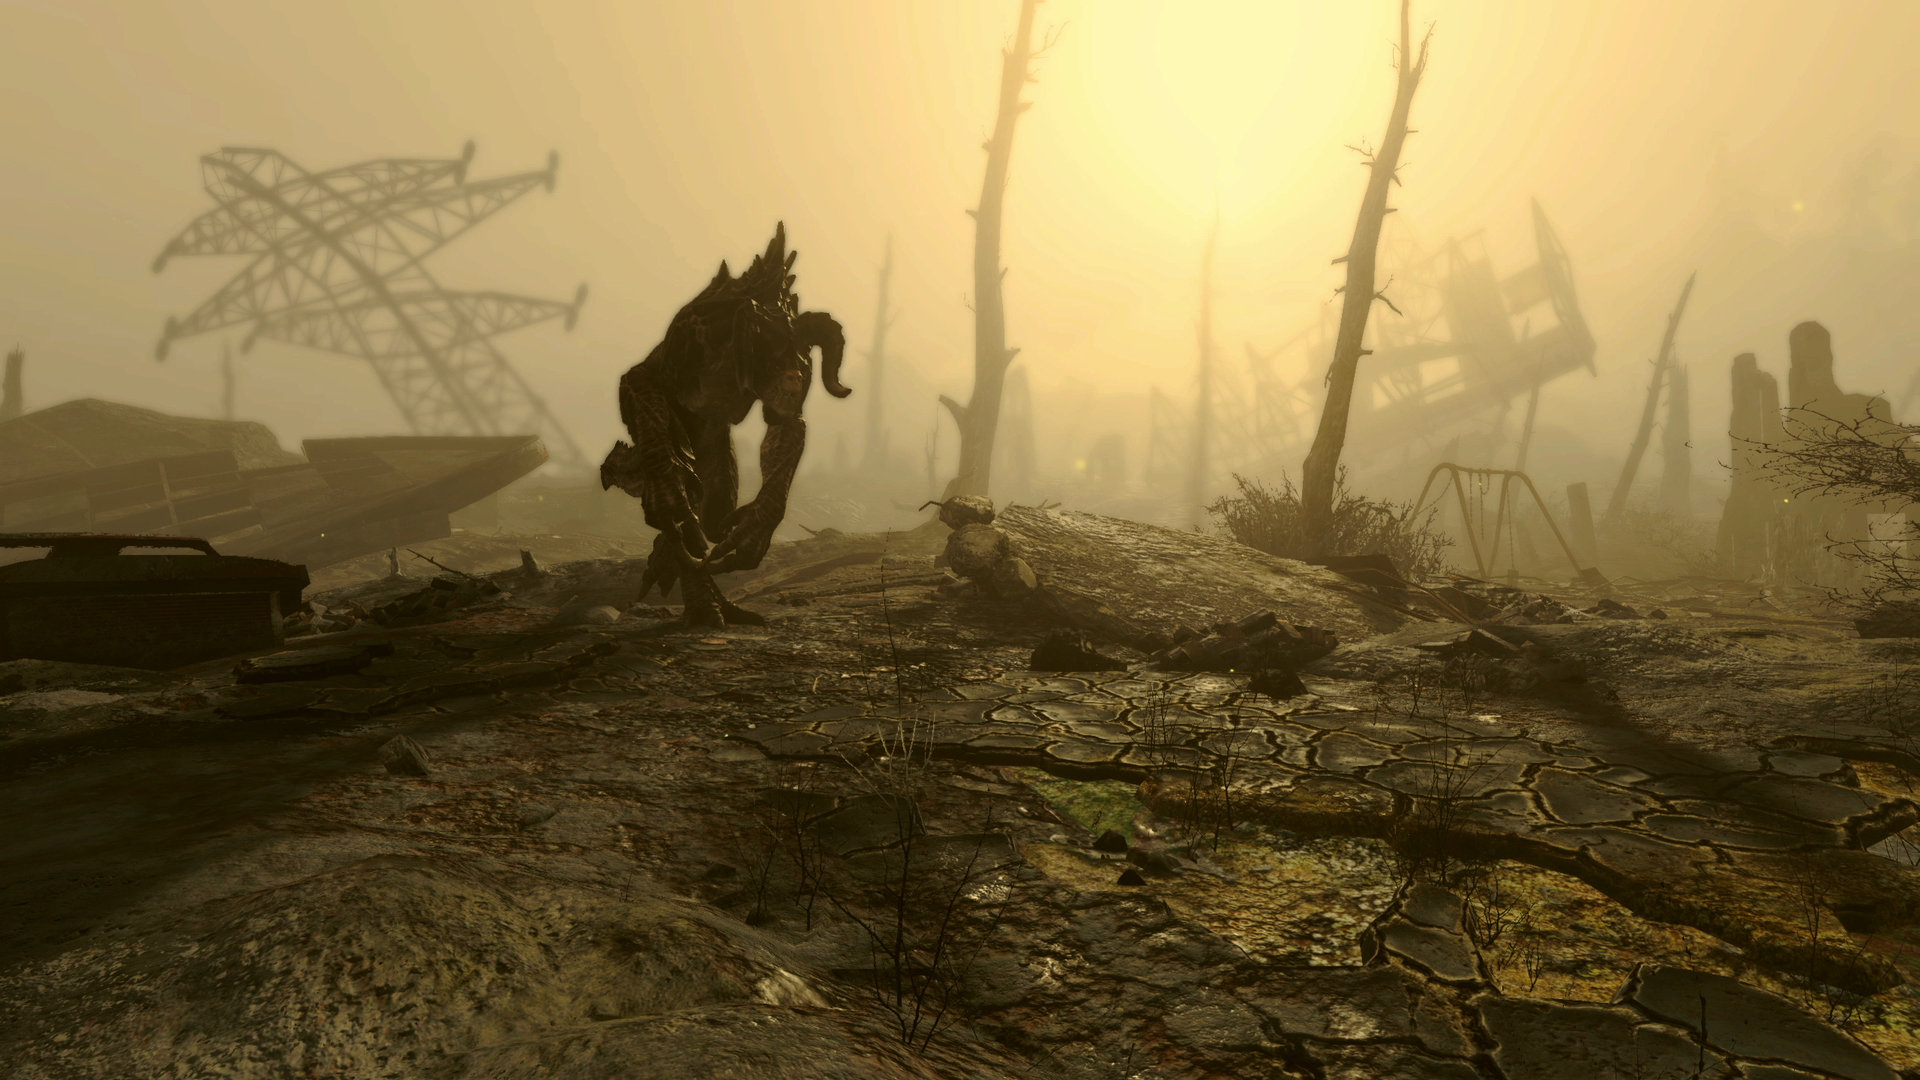 fallout-4-screenshot-03-ps4-us-04aug15?$